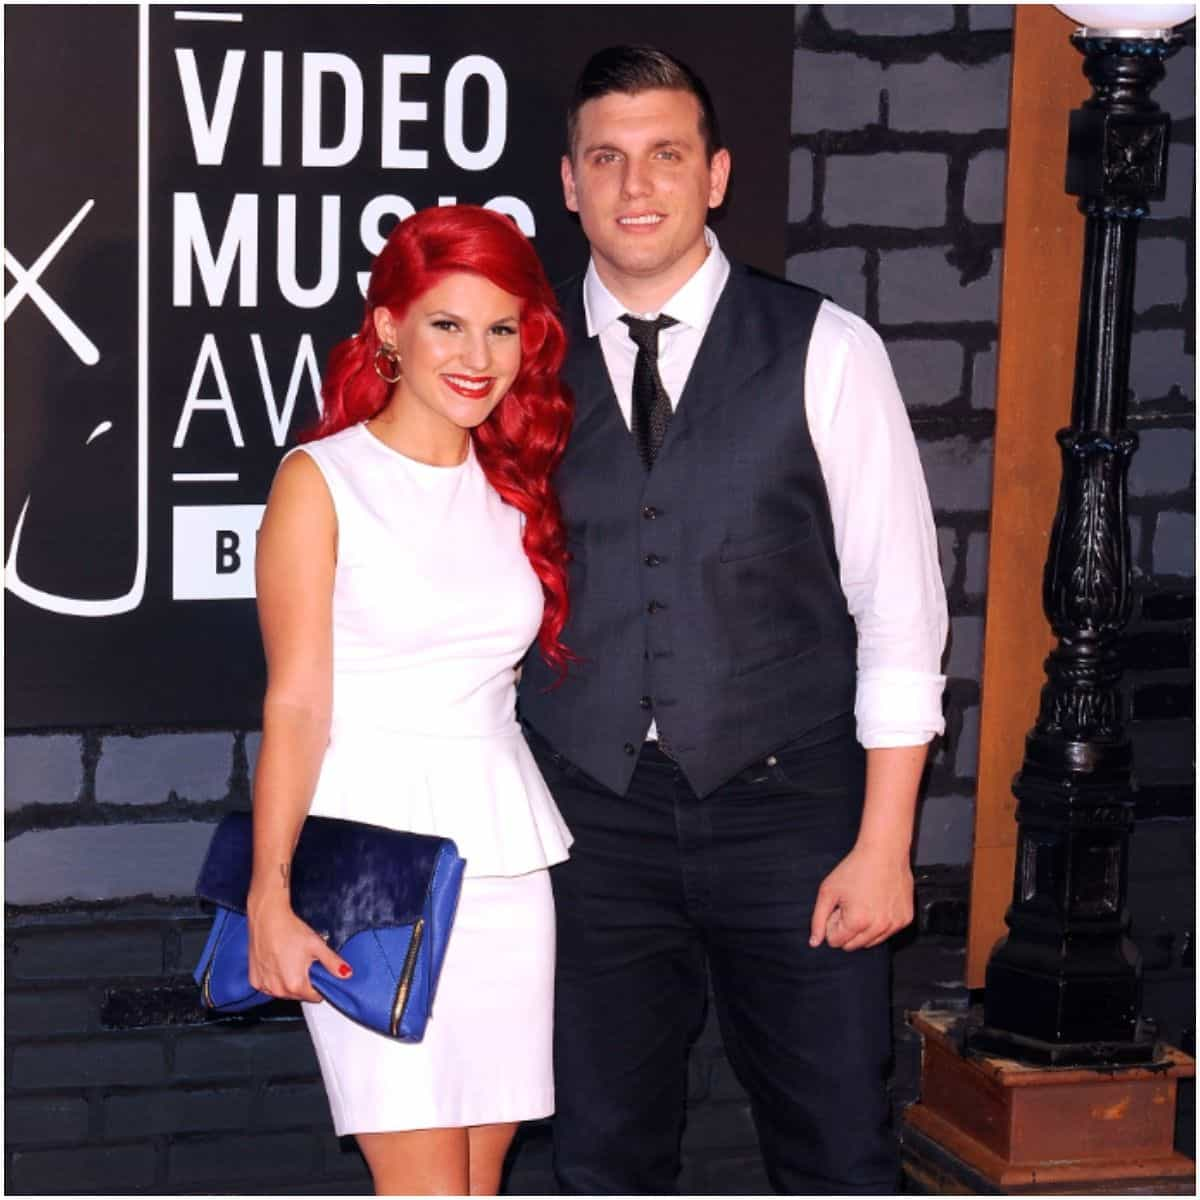 Chris Distefano and girlfriend Carly Aquilino